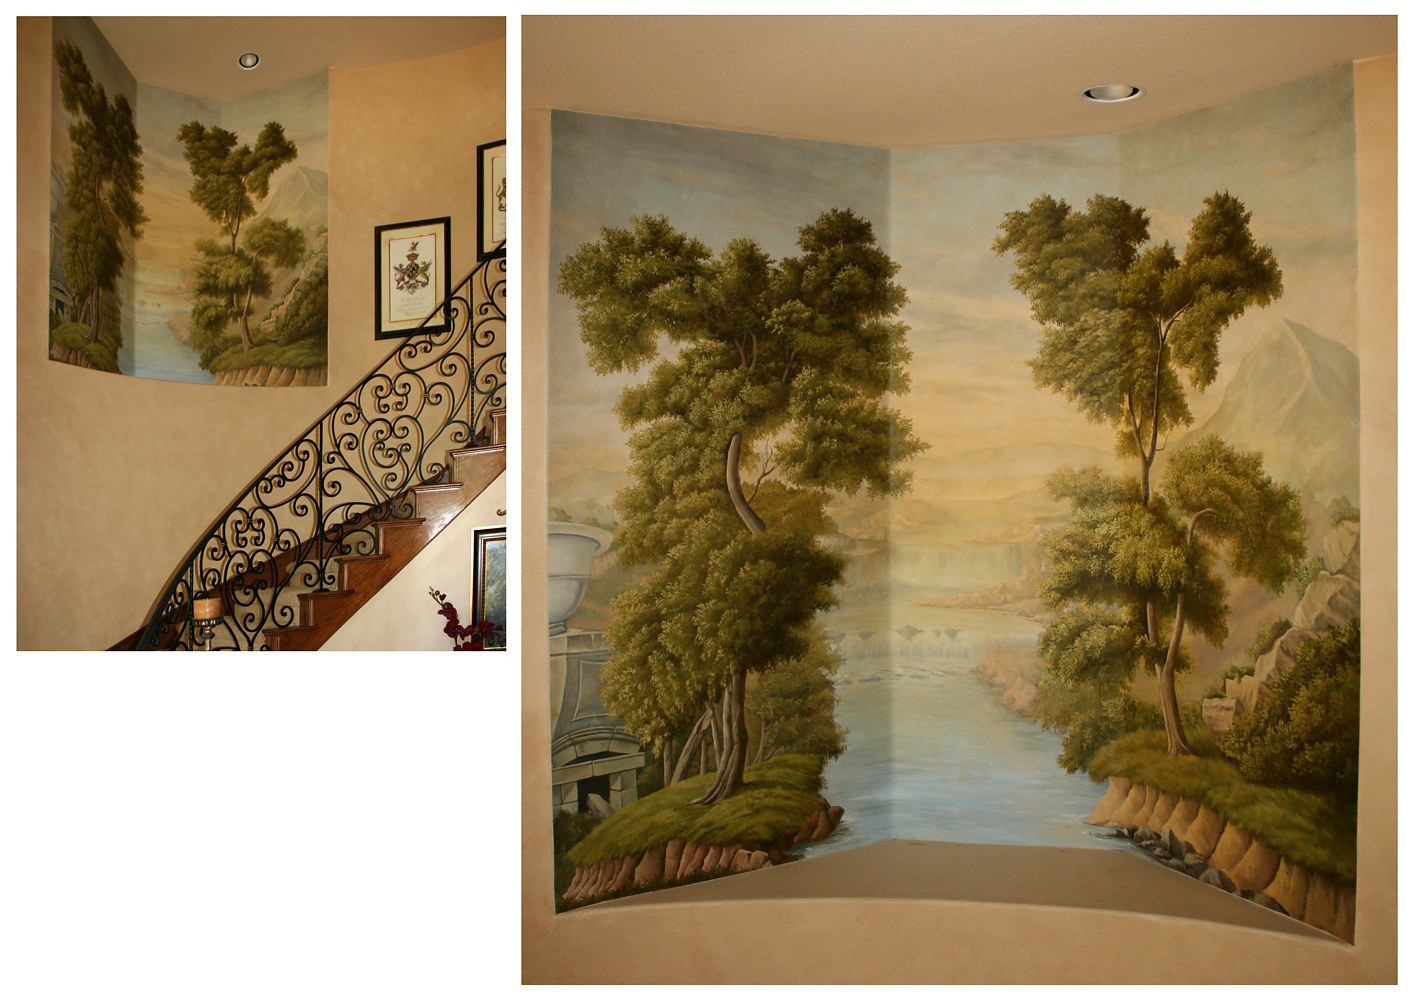 Reproduction Mural for Anaheim Hills Staircase web by Robert Milling